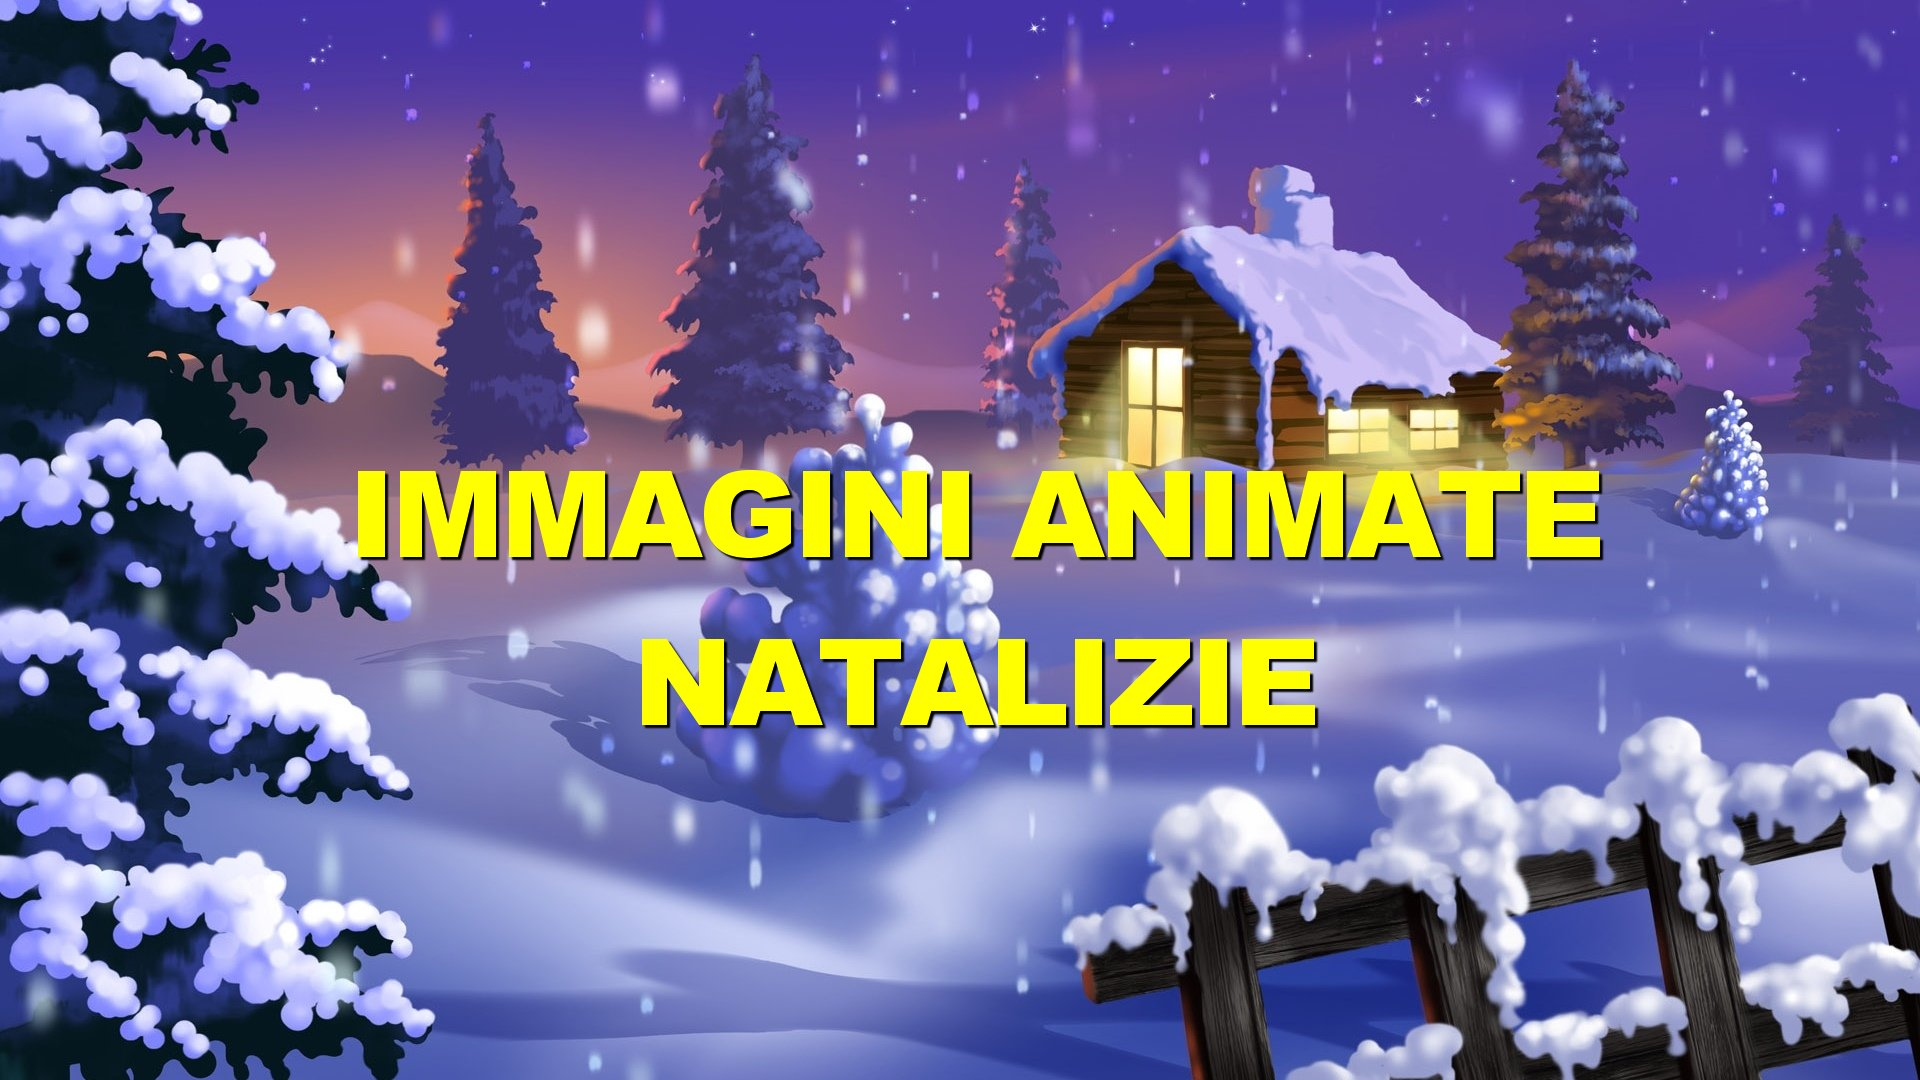 Auguri Di Natale Video Gratis.Cartoline Animate E Musicali Di Buon Natale Cartoline Video